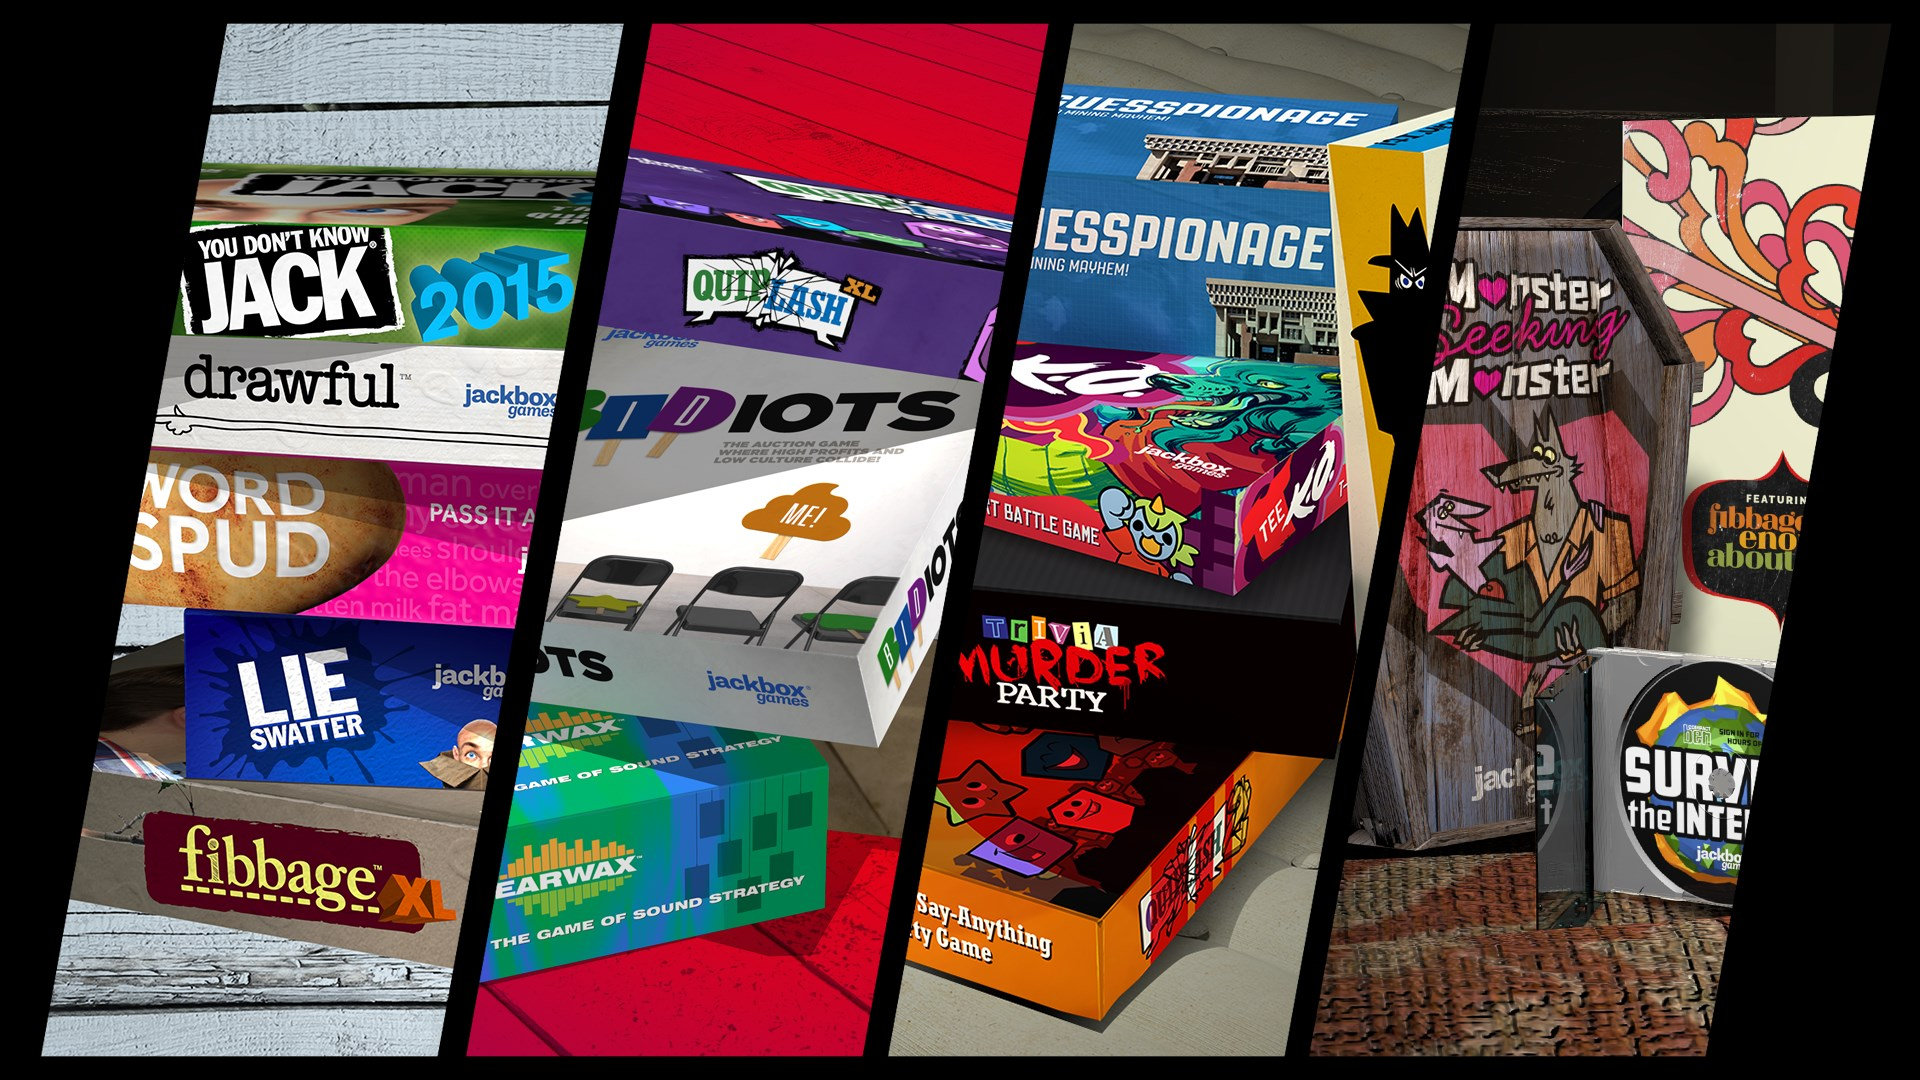 Buy The Jackbox Party Quadpack - Microsoft Store